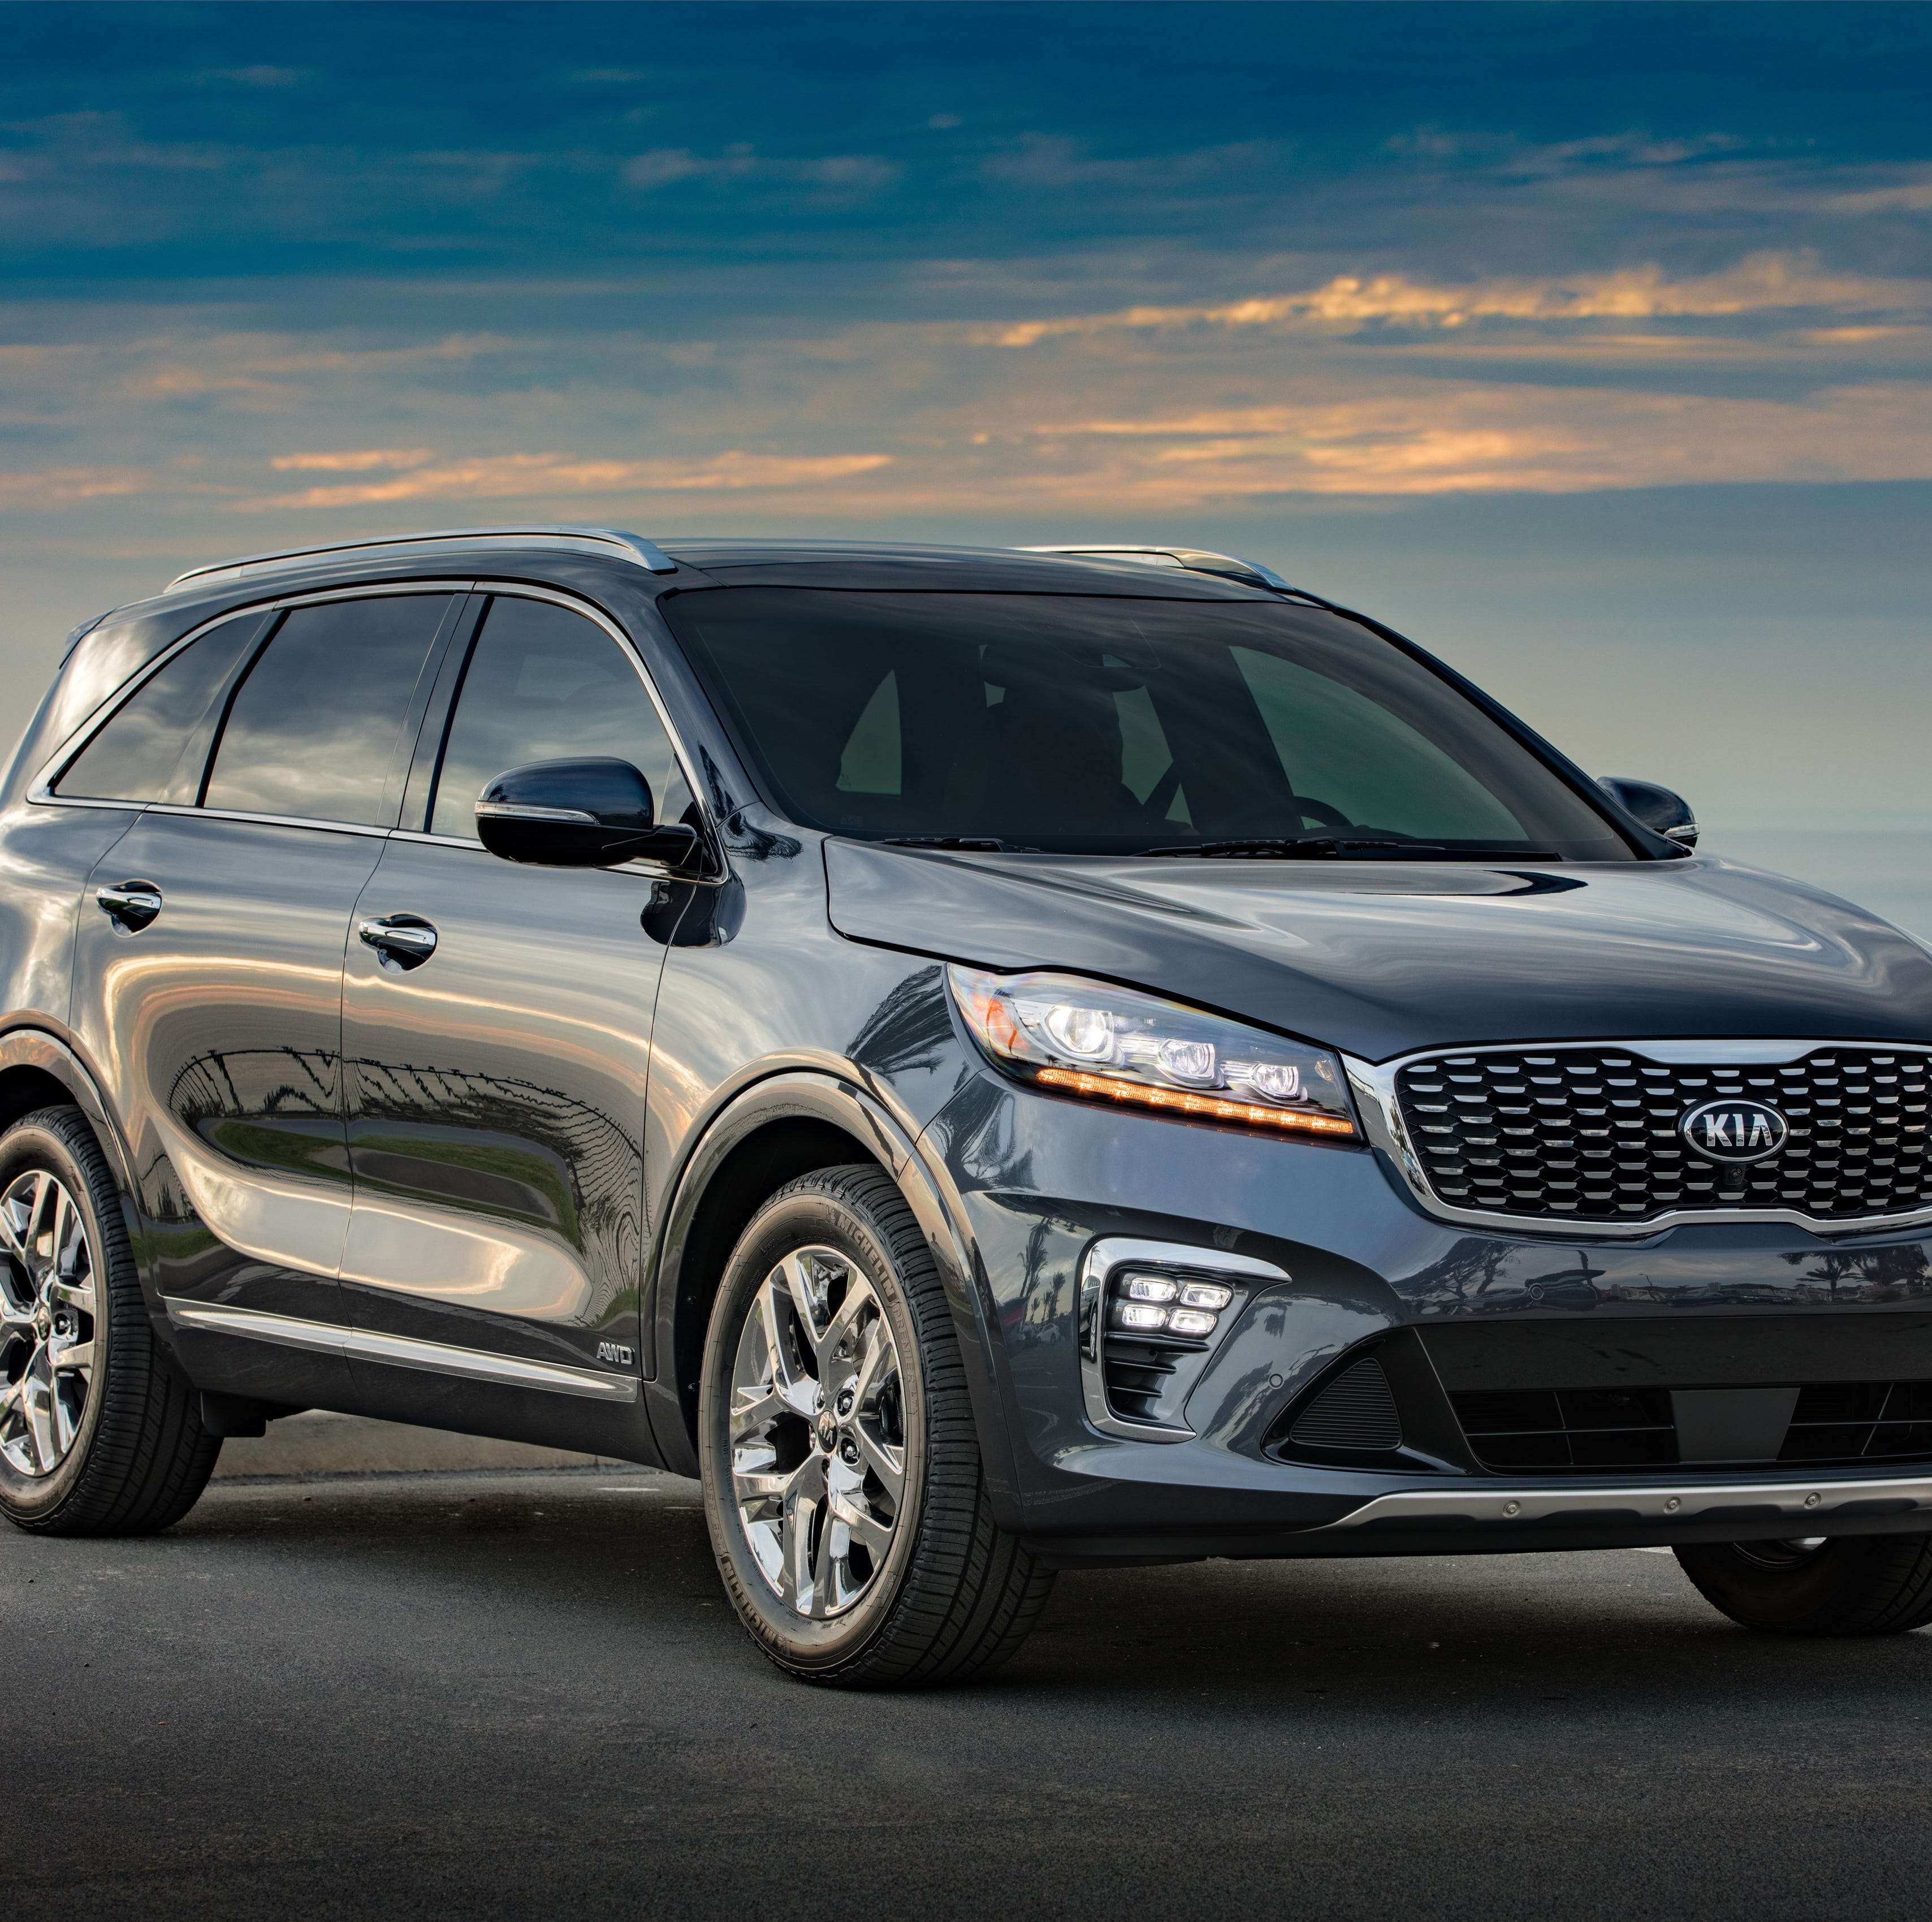 2019 Kia Sorento is comfortable and competent